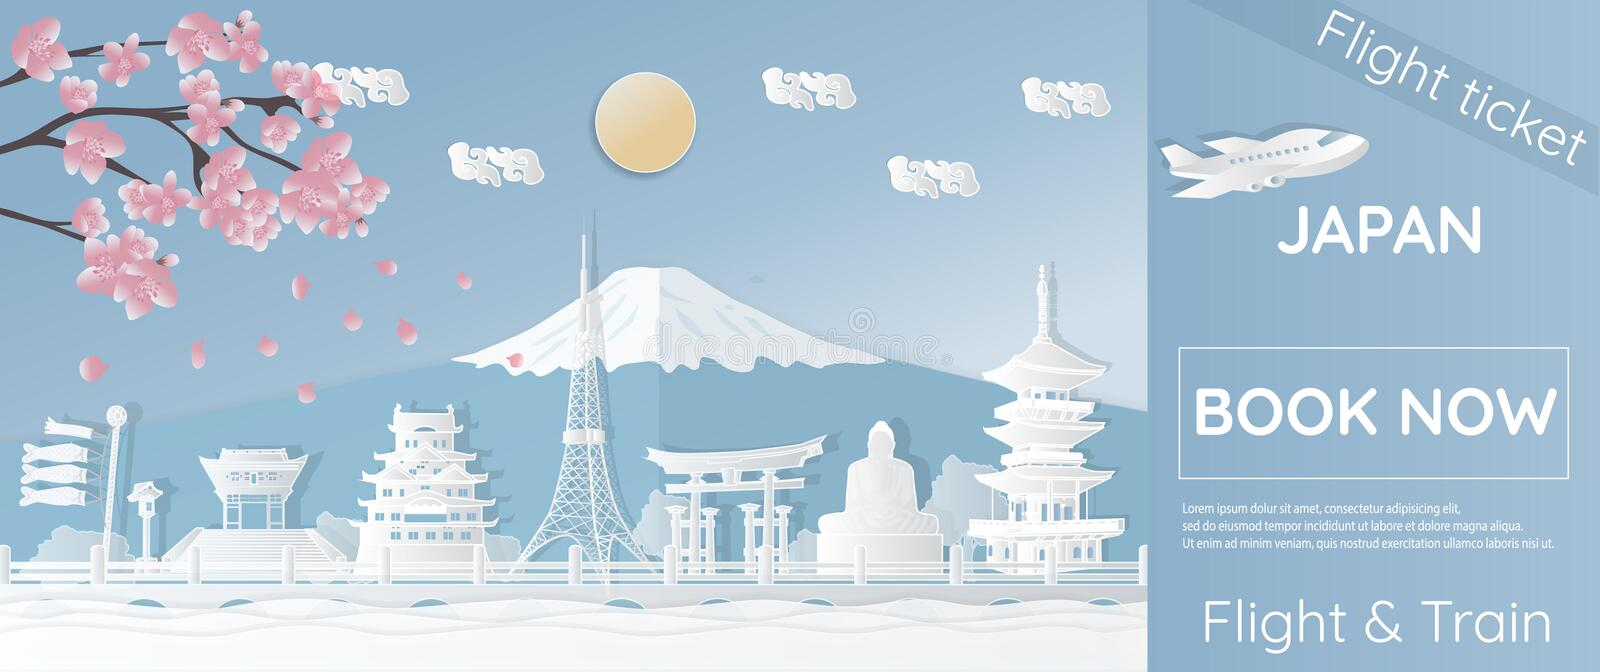 Tickets for traveling to Japan, famous places in Japan, advertising templates, plane tickets in paper-cut styles - vector illustra vector illustration